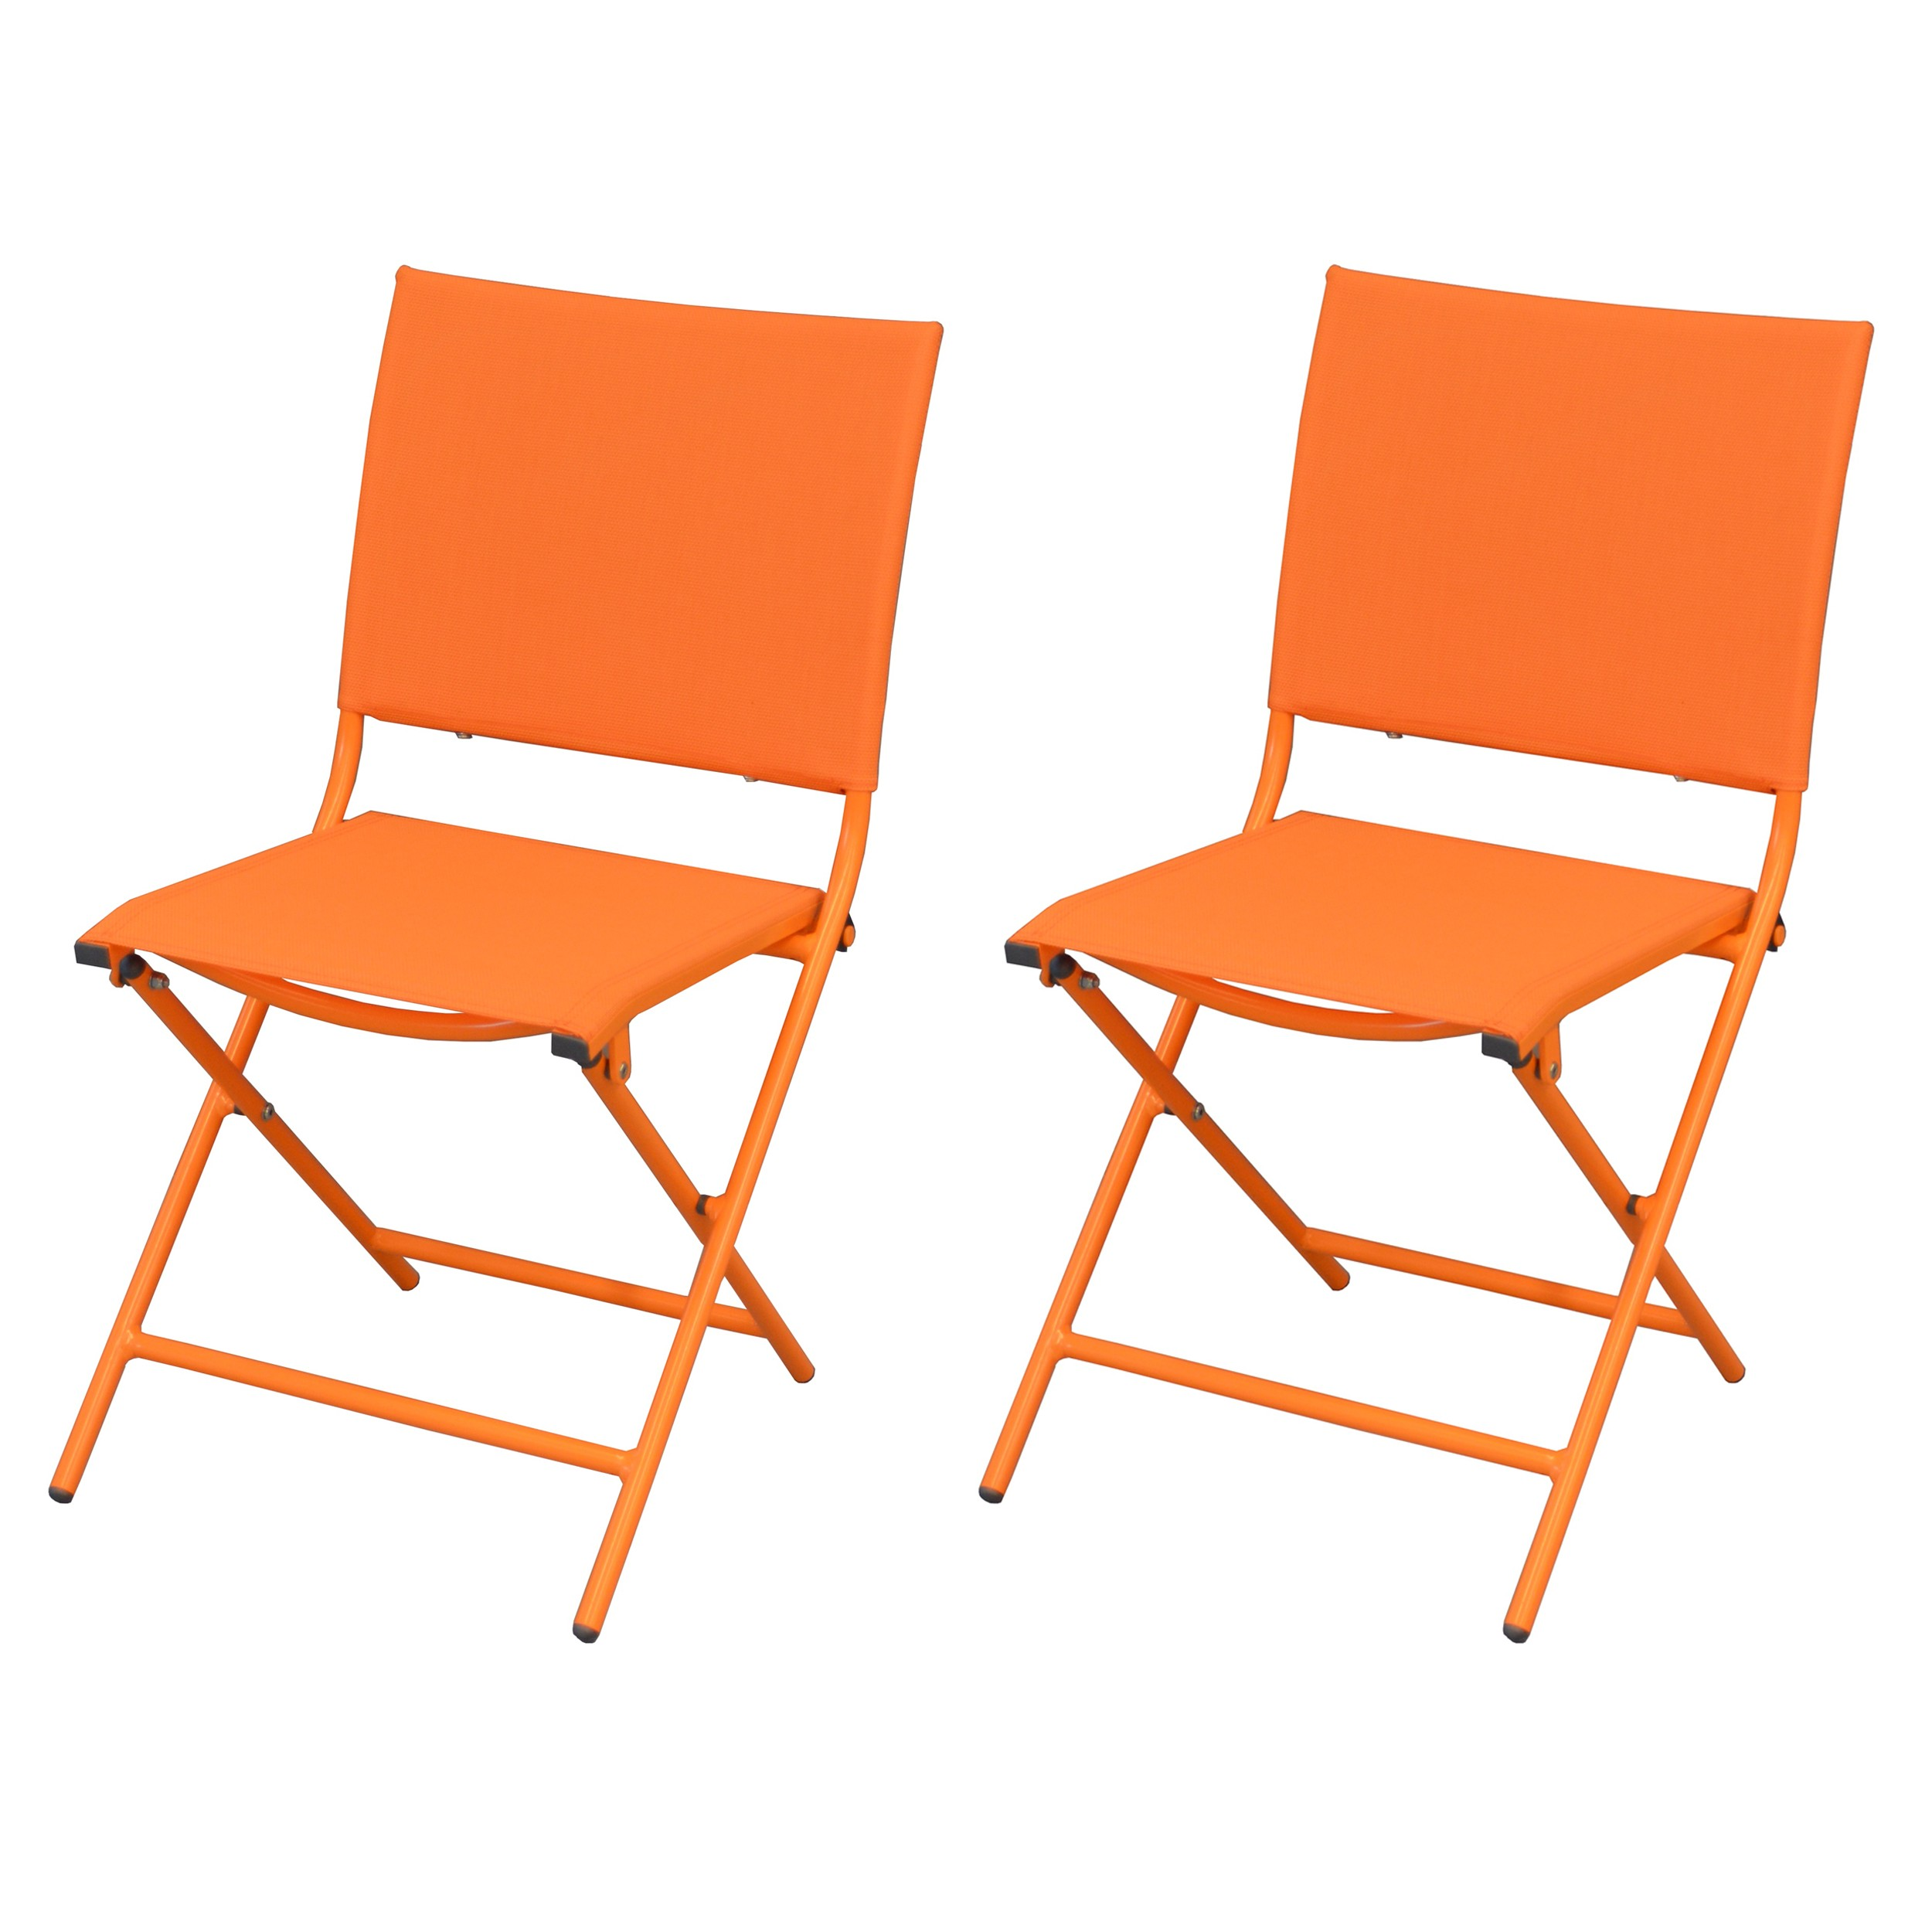 chaise bali orange testez nos chaises bali orange prix canon rendez vous d co. Black Bedroom Furniture Sets. Home Design Ideas